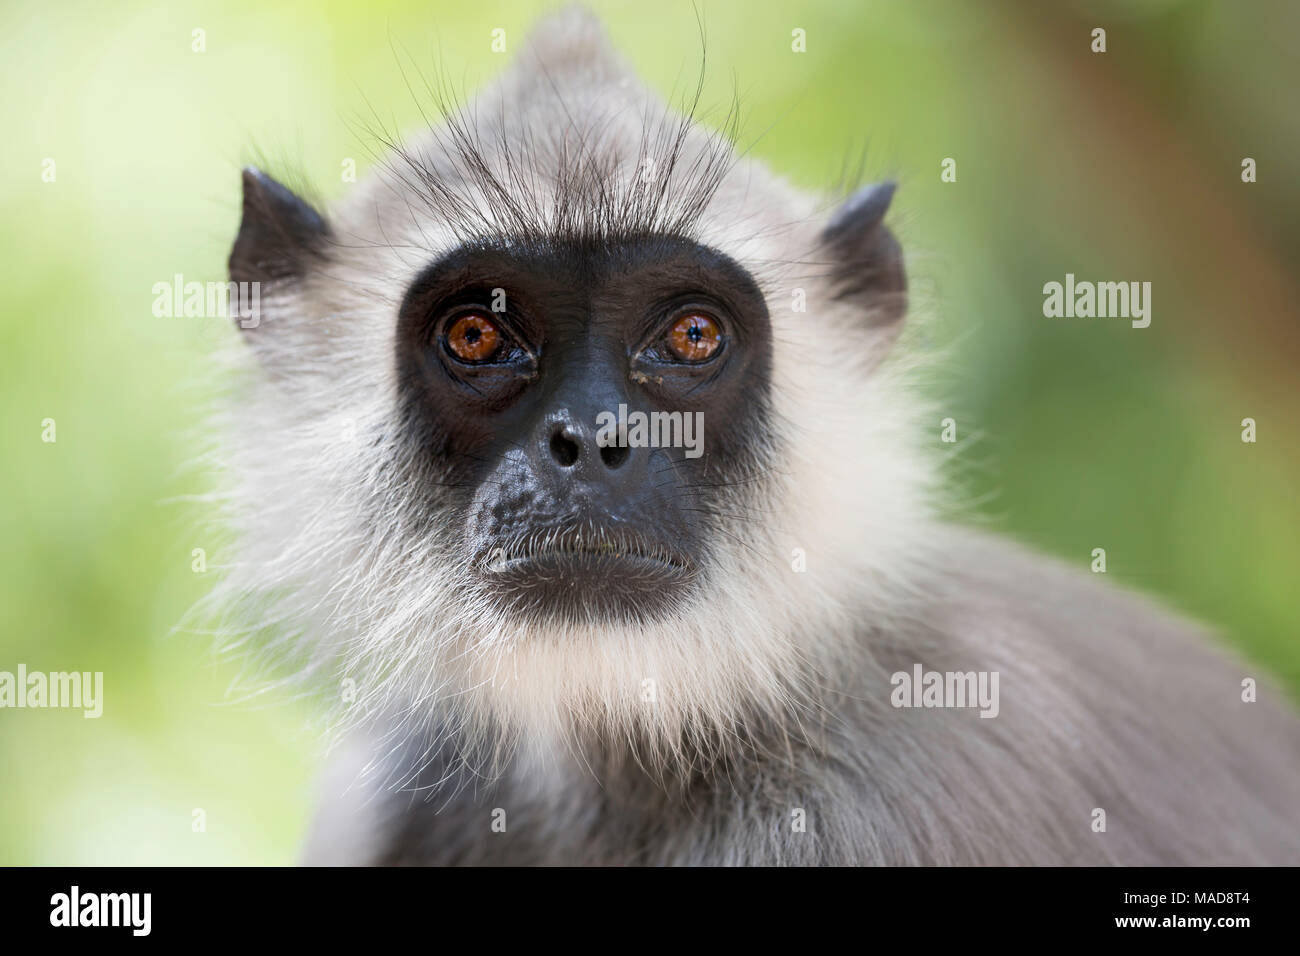 Gray langurs or Hanuman langurs, Semnopithecus entellus, are the most widespread langurs of the Indian Subcontinent. They are found throughout most of - Stock Image